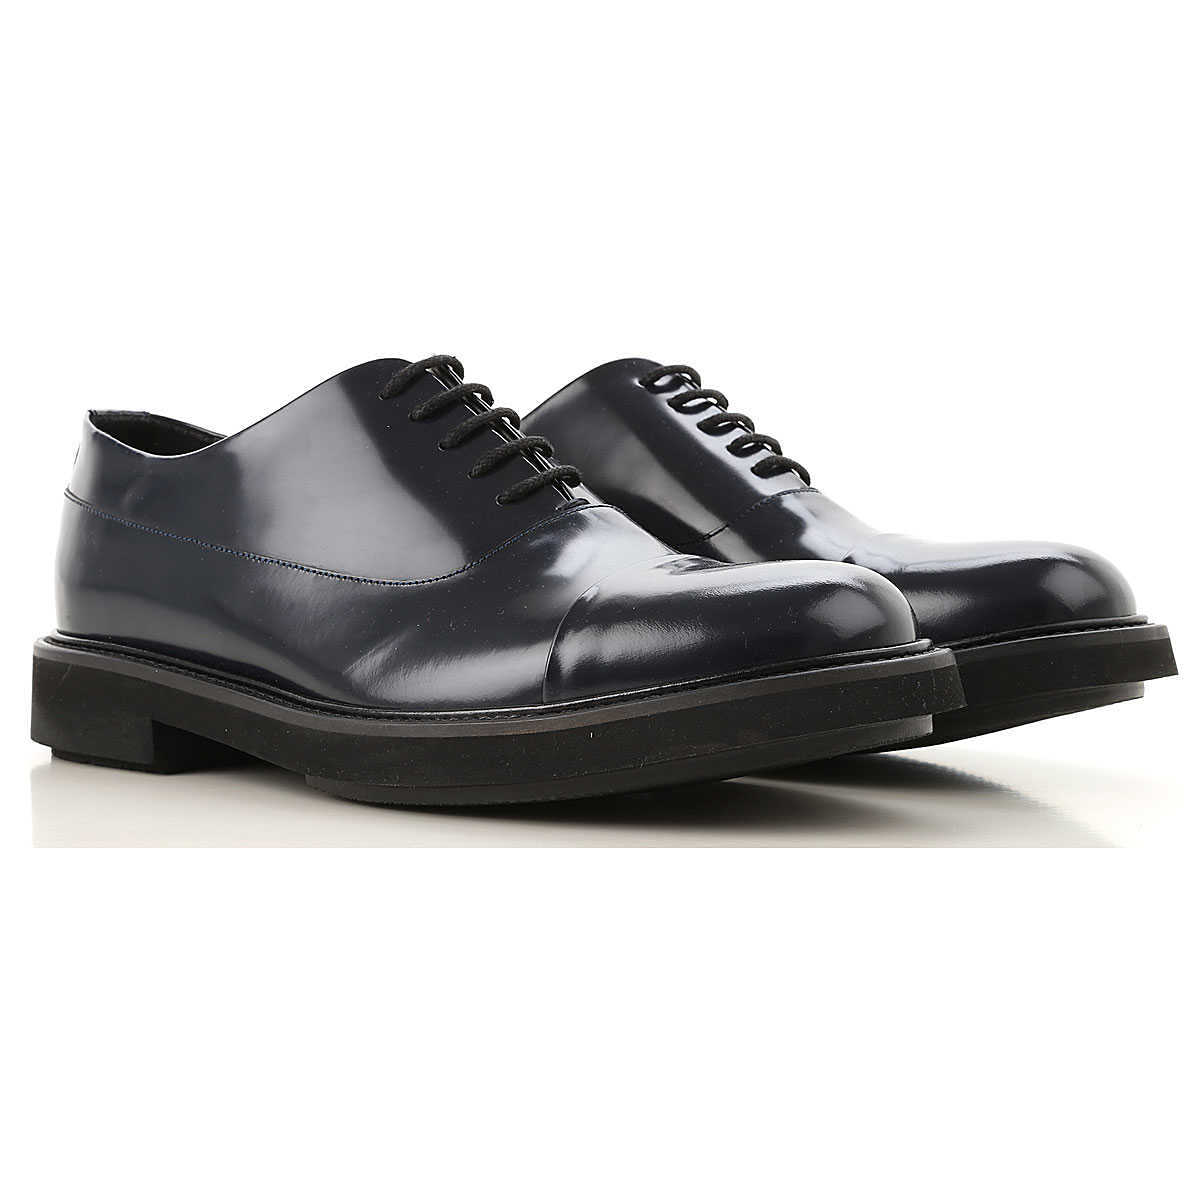 Emporio Armani Lace Up Shoes for Men Oxfords 7 8.5 9 Derbies and Brogues On Sale UK - GOOFASH